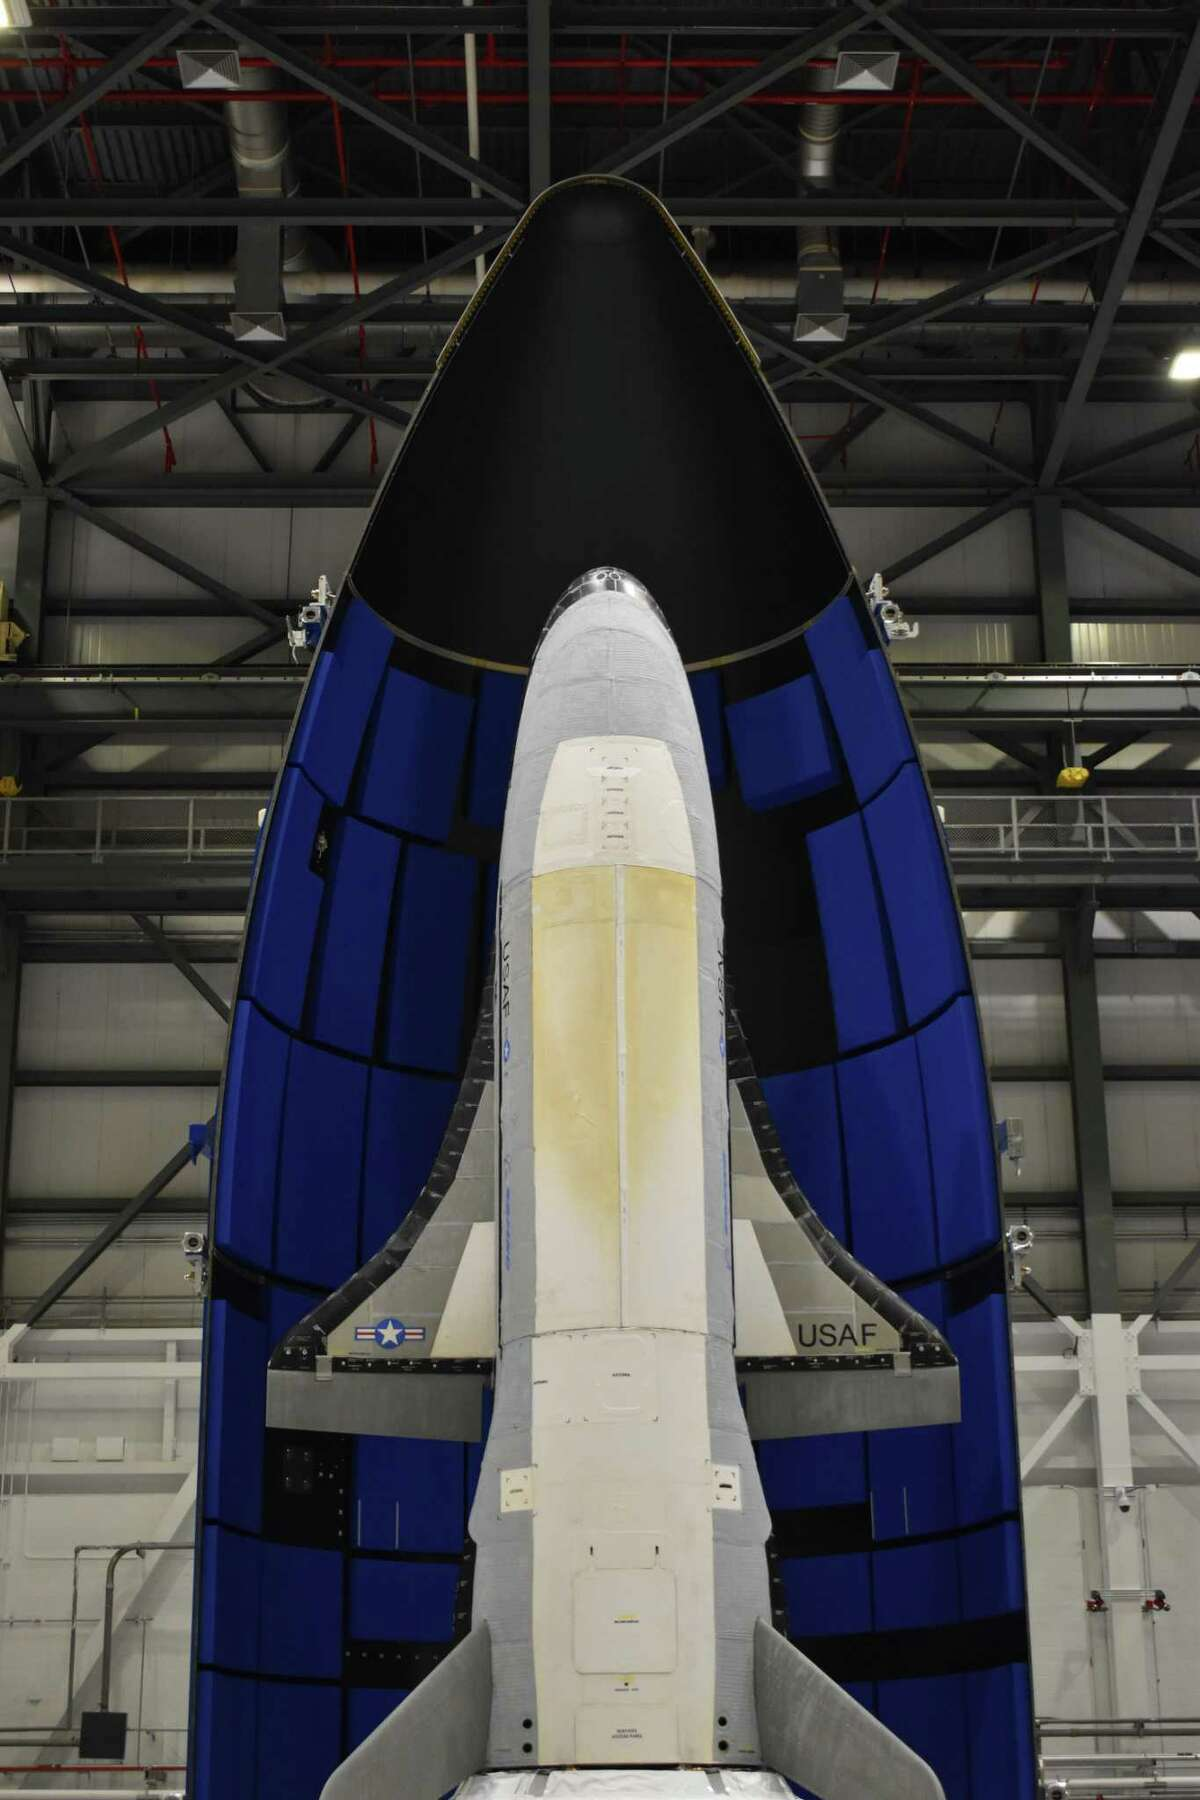 The encapsulated X-37B Orbital Test Vehicle for United States Space Force-7 mission. The vehicle is covered by a fairing during launch.